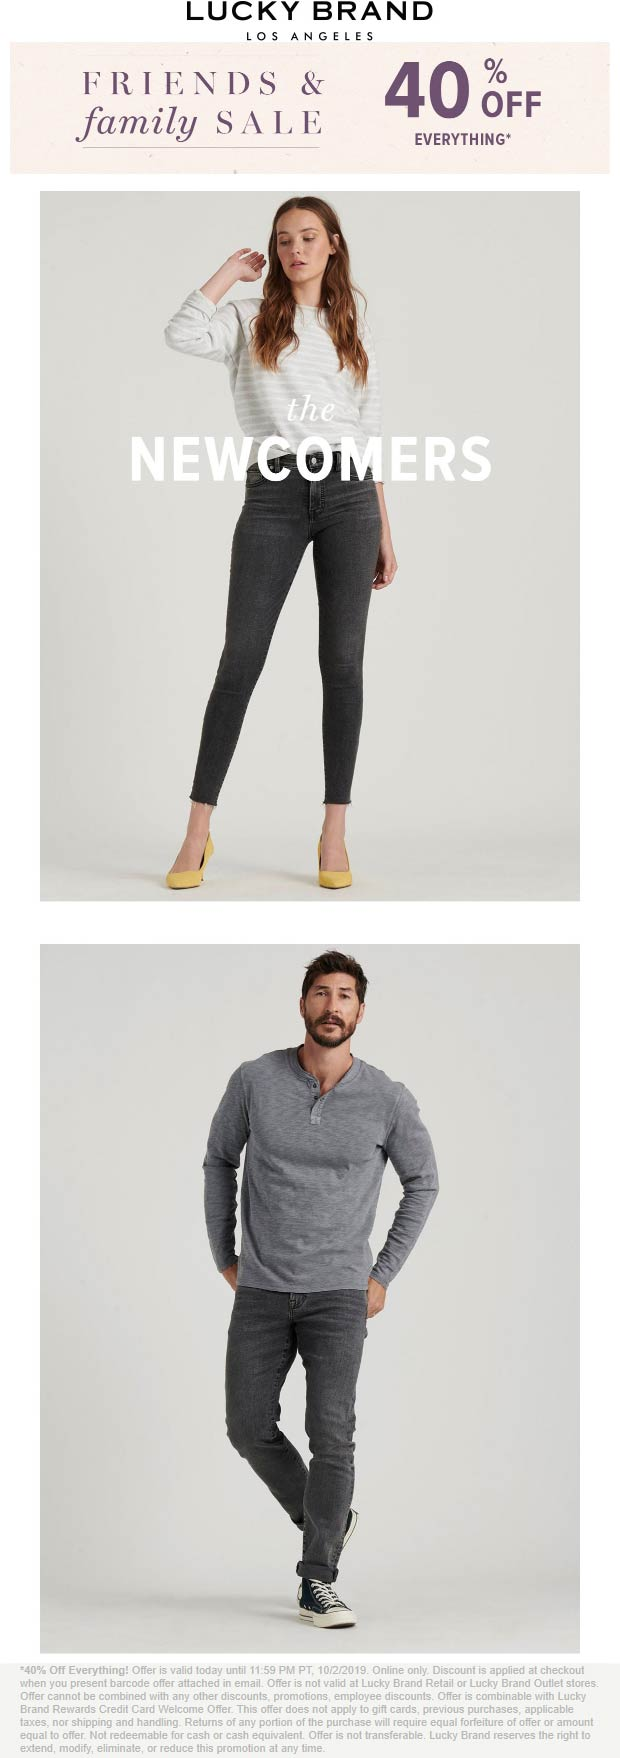 Lucky Brand Coupon October 2019 40% off everything online at Lucky Brand, no code needed